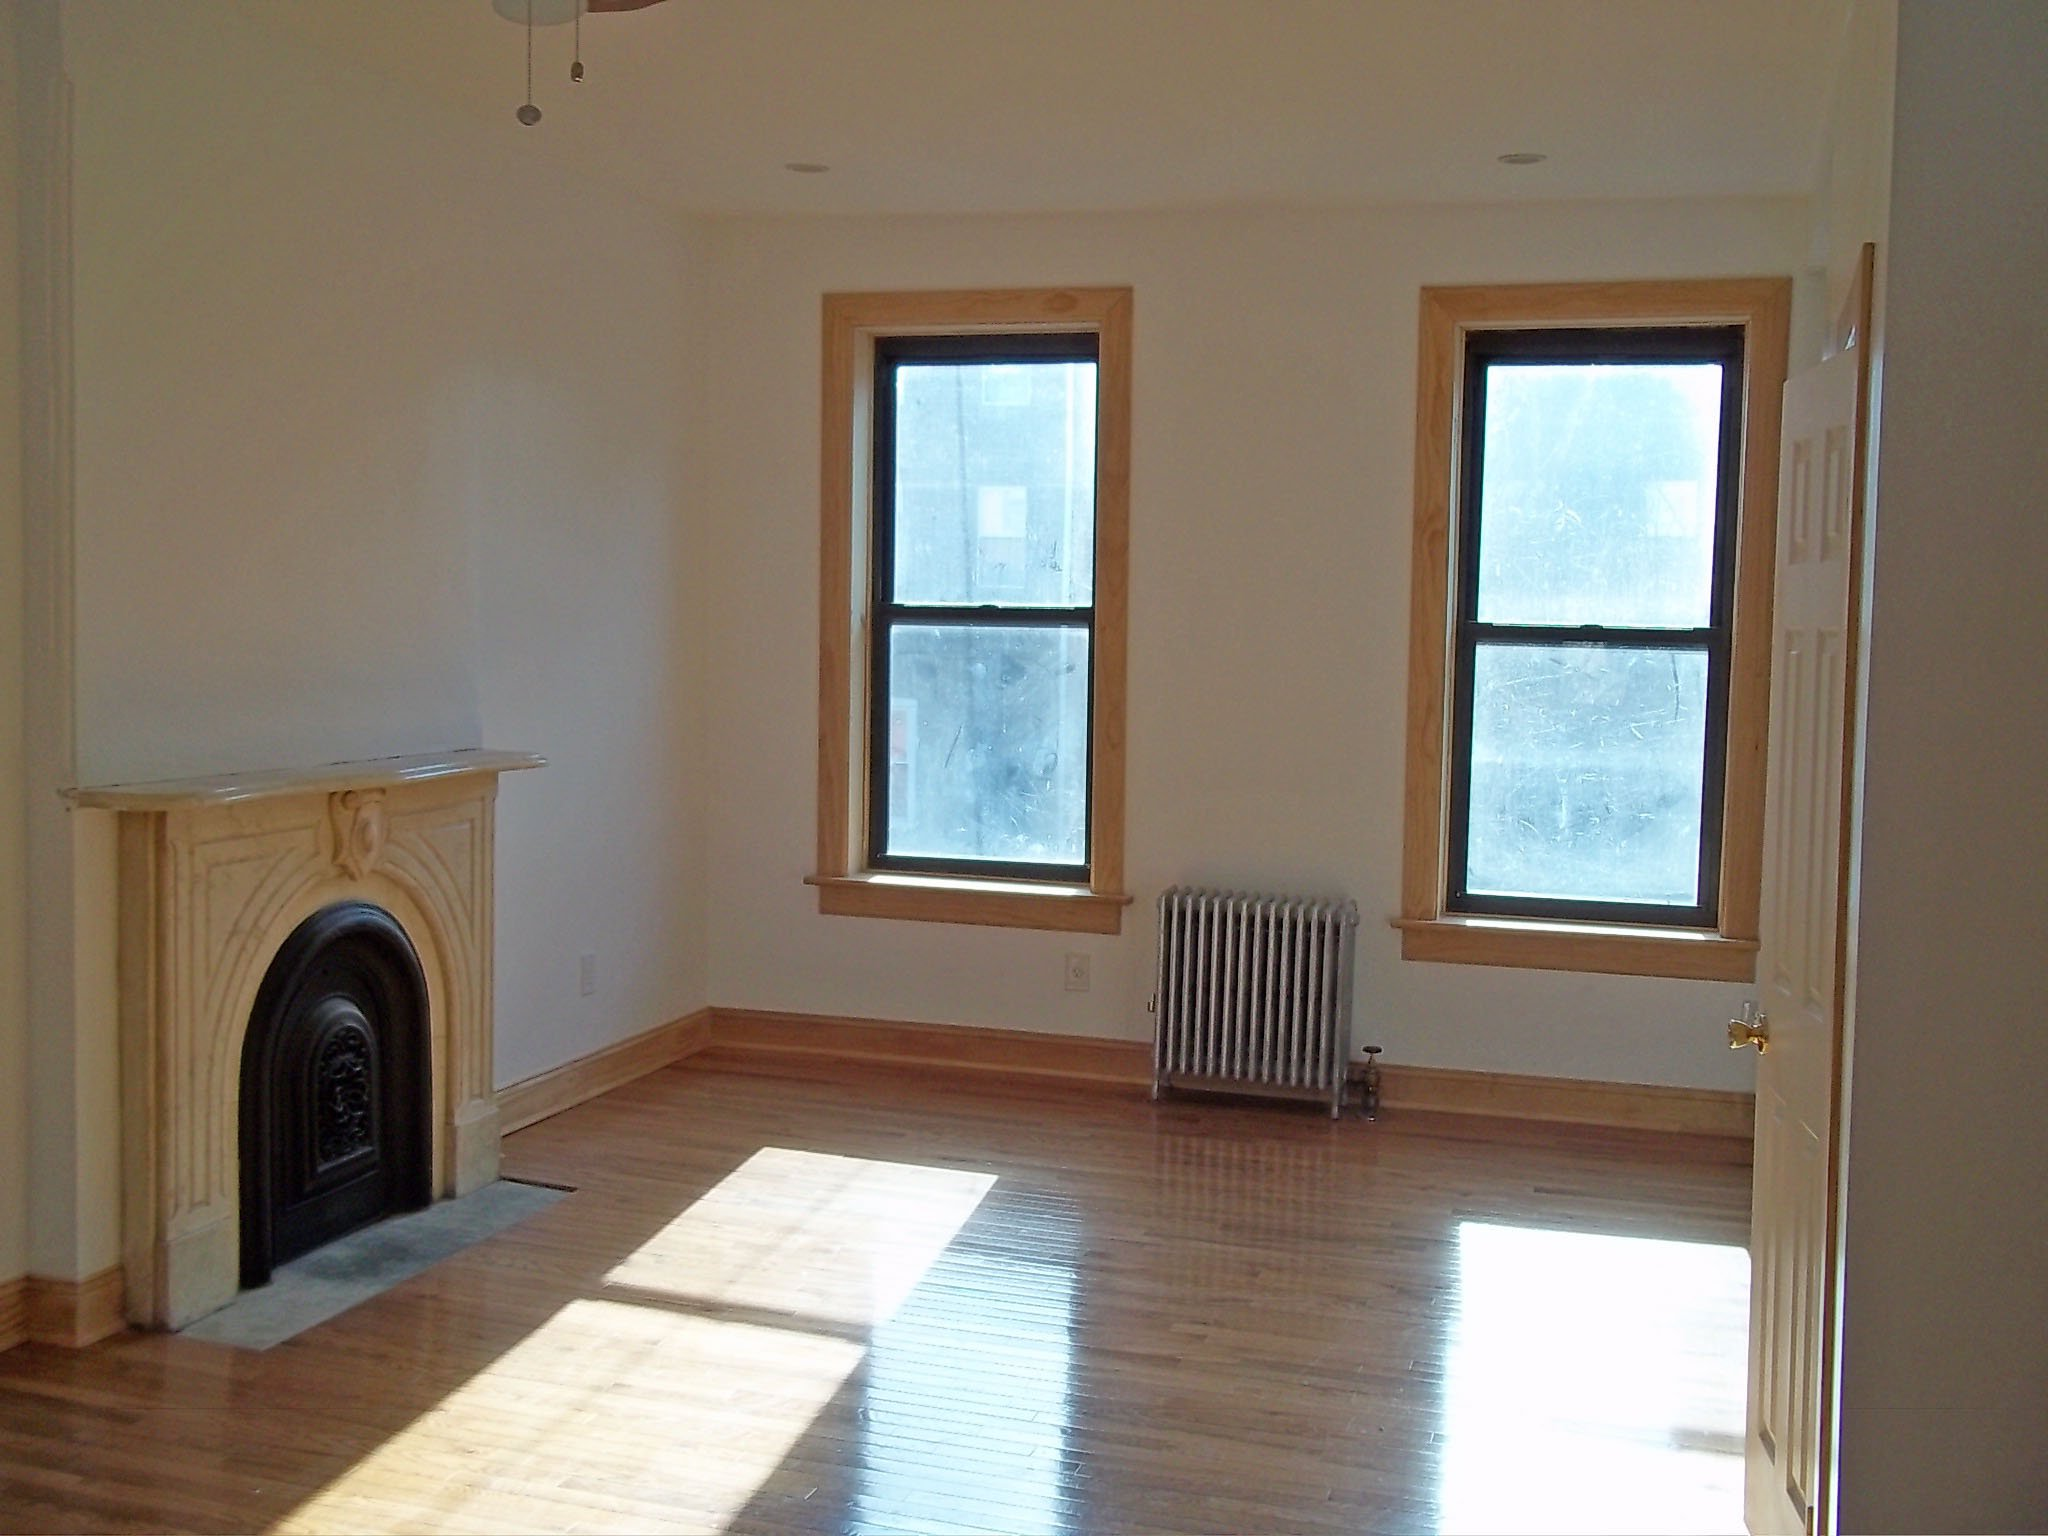 Bedford stuyvesant 1 bedroom apartment for rent brooklyn for I bedroom apartment